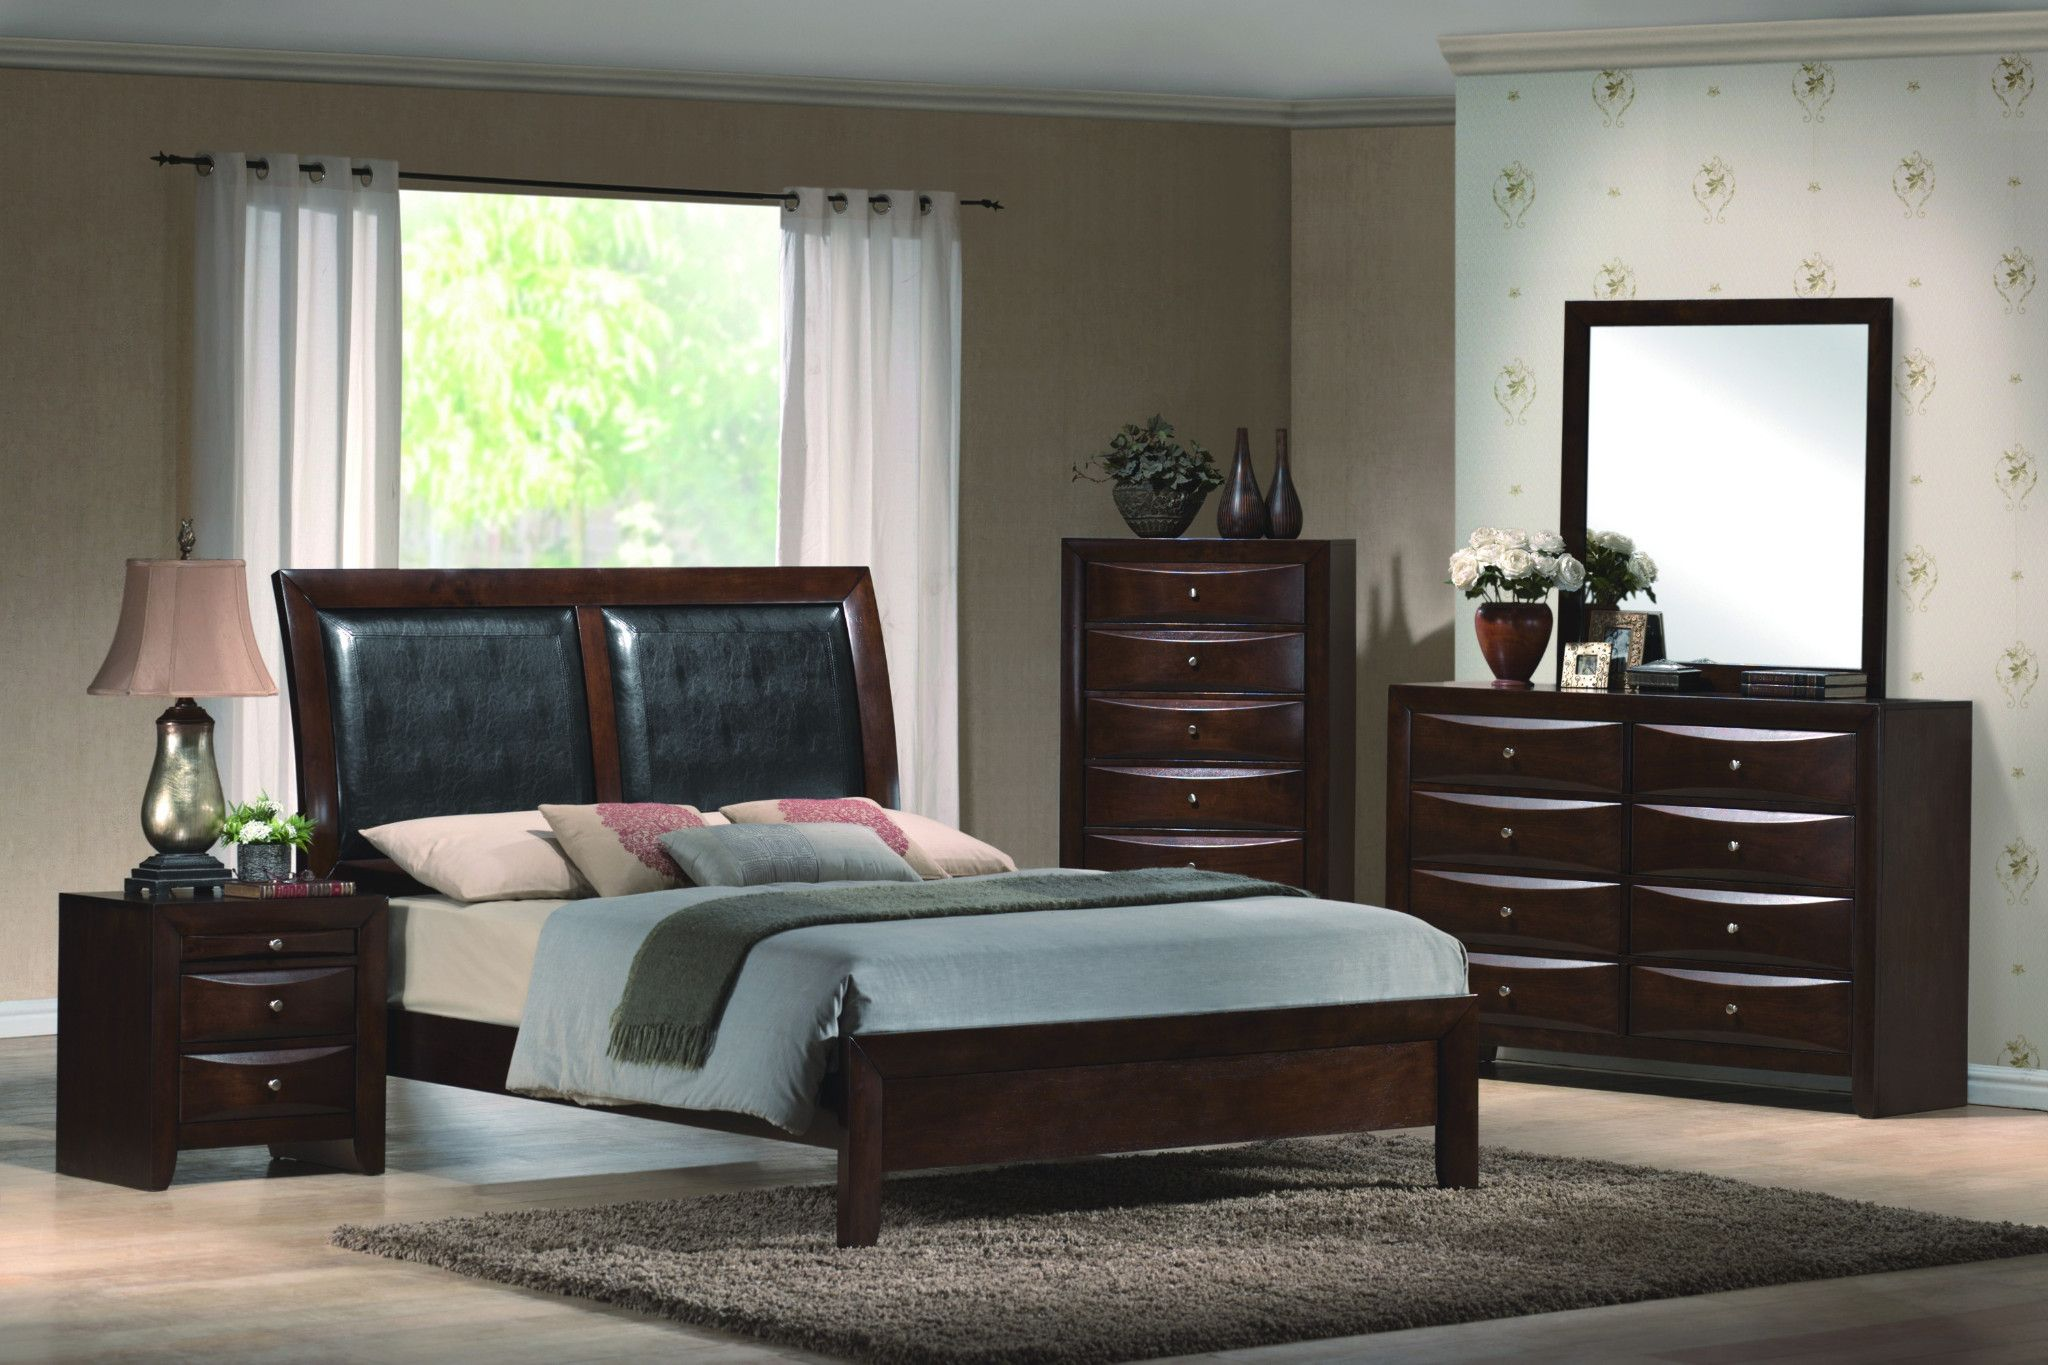 Emily Bedroom Suite With Padded Headboard Bed Queen 1159 00 Or 1259 00 King Also Available I Bedroom Sets Queen Espresso Bedroom Furniture Platform Bed Sets